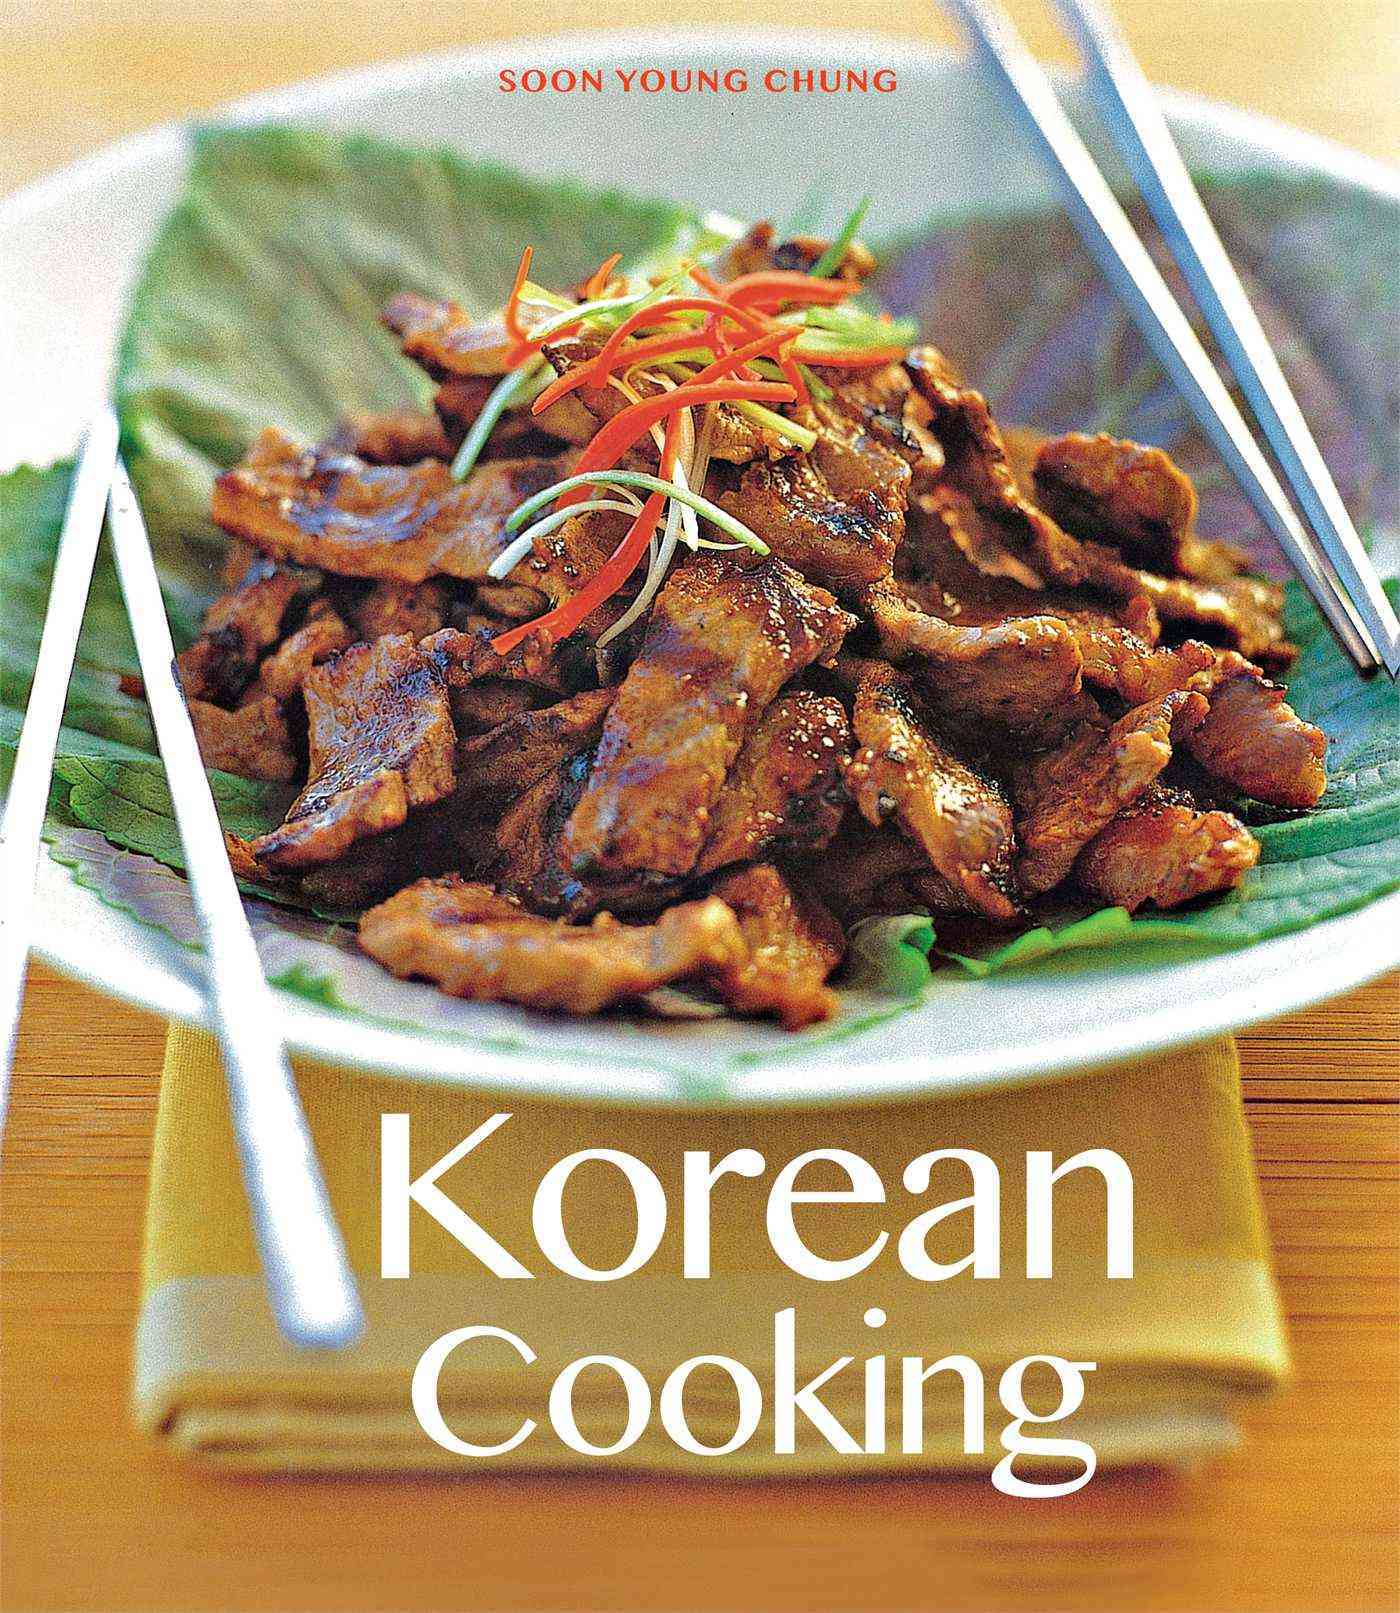 Korean Cooking By Chung, Soon Young